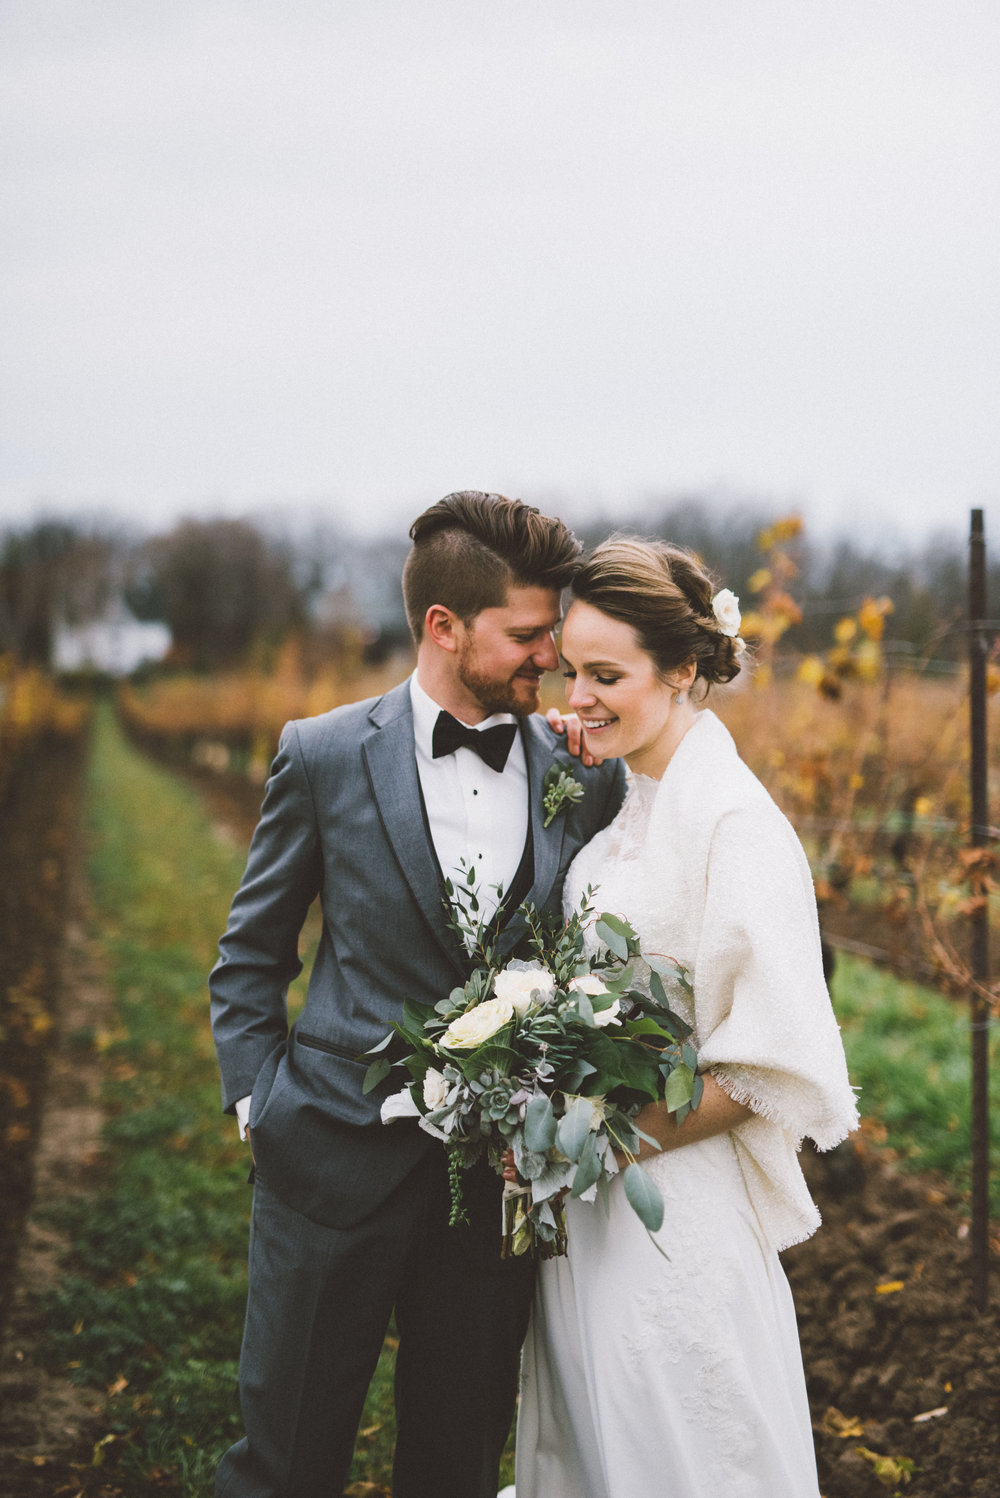 Vineland Estate Winery Wedding, Niagara wedding photographer Nikki Mills